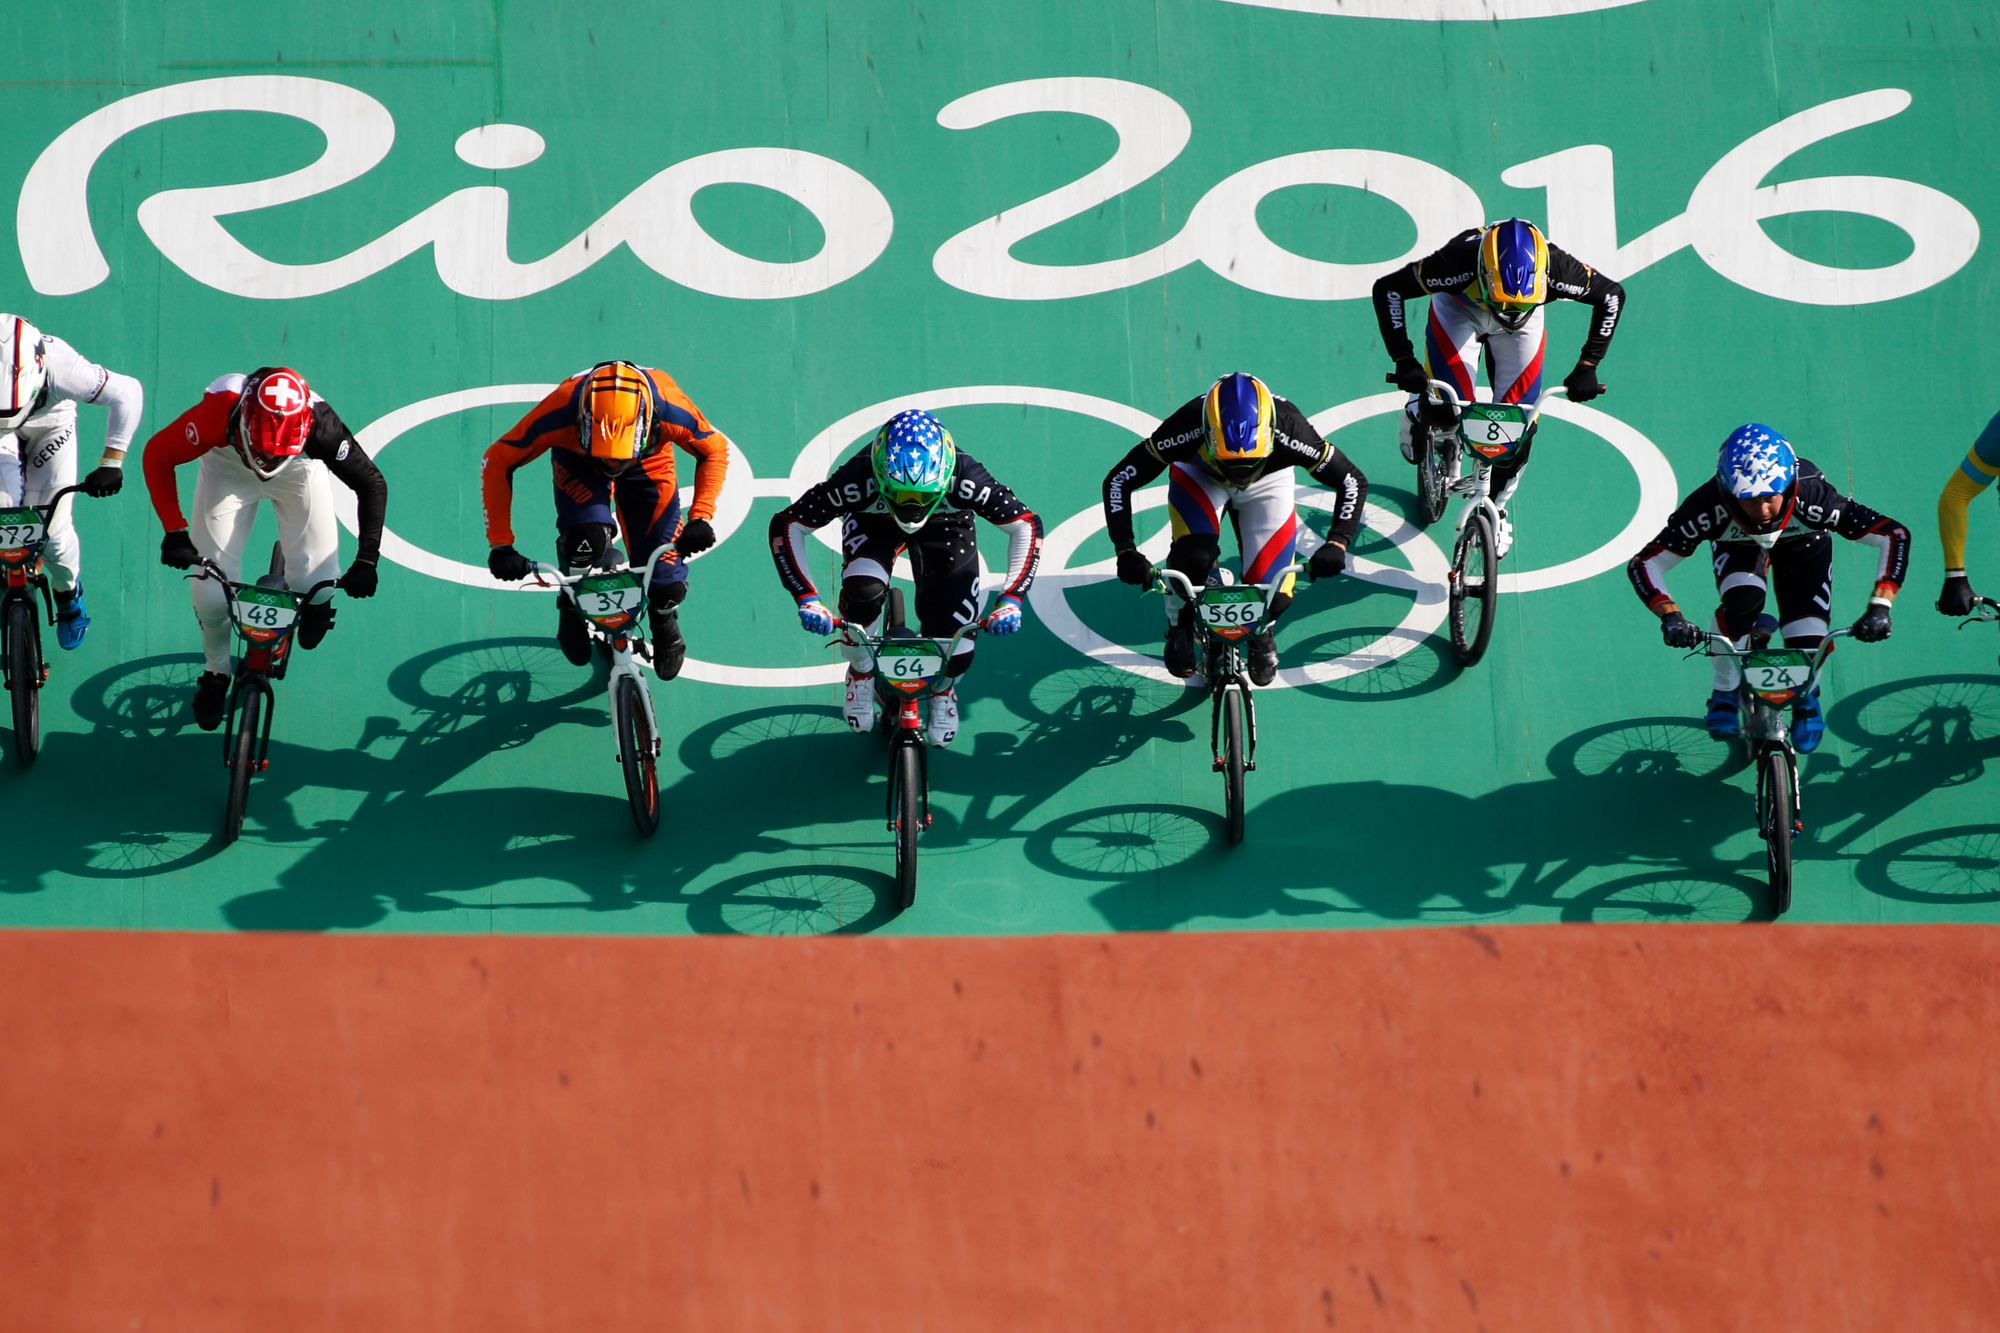 Riders speed down the starting ramp in a Men's BMX Cycling semifinal in the Olympic BMX Centre at the 2016 Rio Summer Olympics in Rio de Janeiro, Brazil, on August 19, 2016.